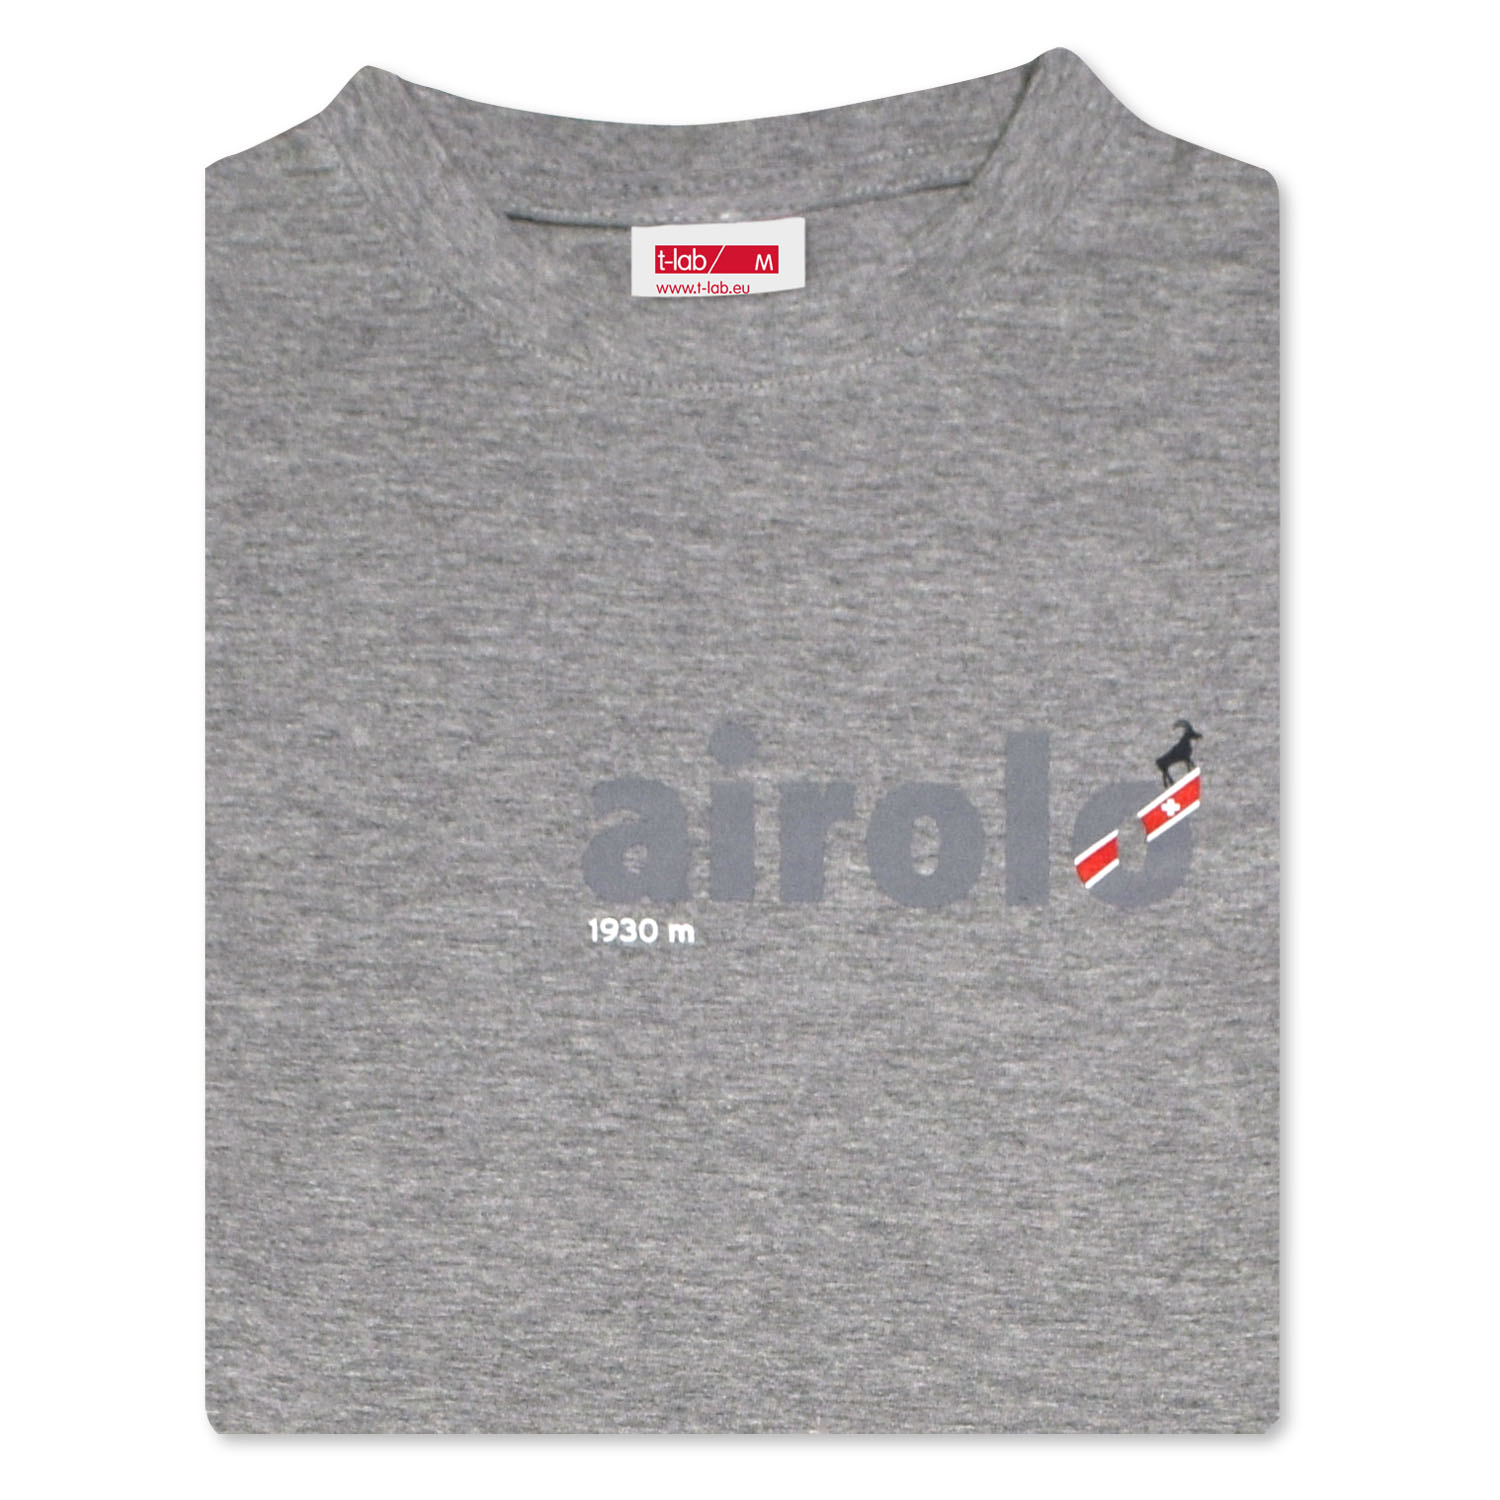 T-lab Airolo longsleeve t-shirt grey folded